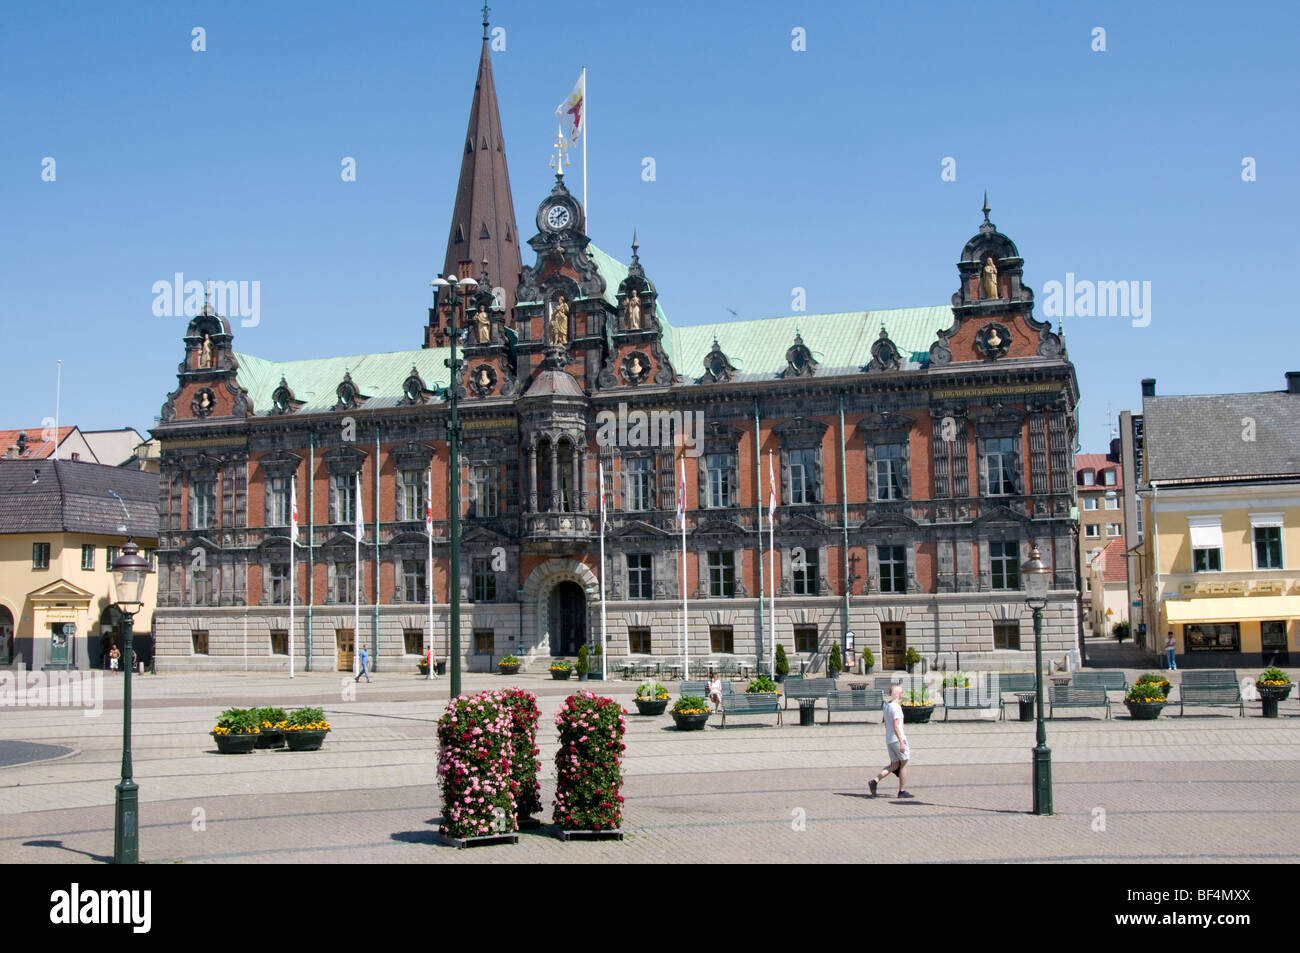 On the east side of Stortorget is the Malmö Town Hall, built in 1546 in Dutch Renaissance style (altered in - Stock Image